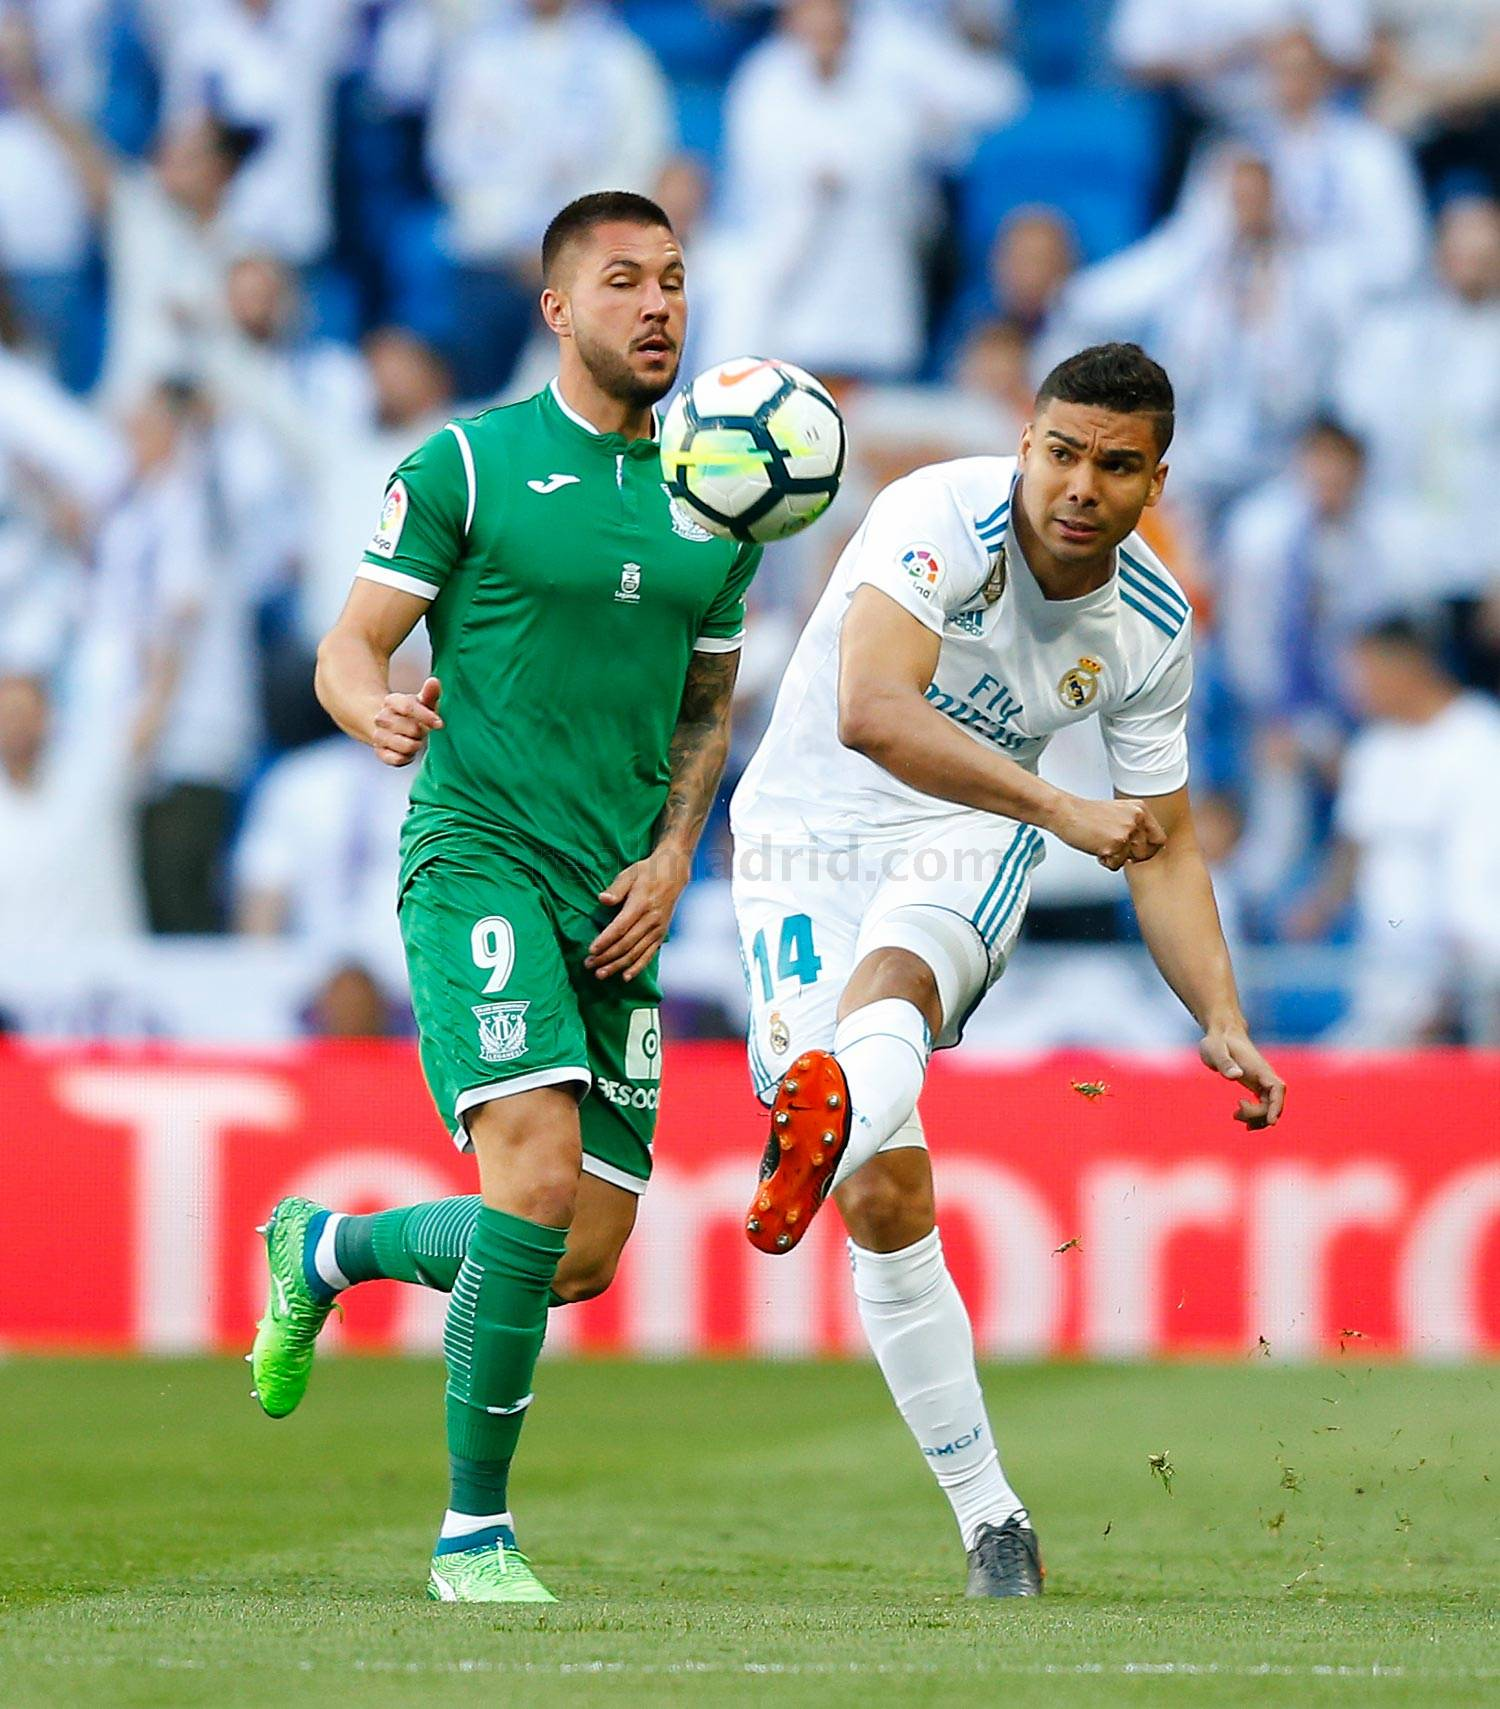 Real Madrid - Real Madrid - Leganés - 28-04-2018